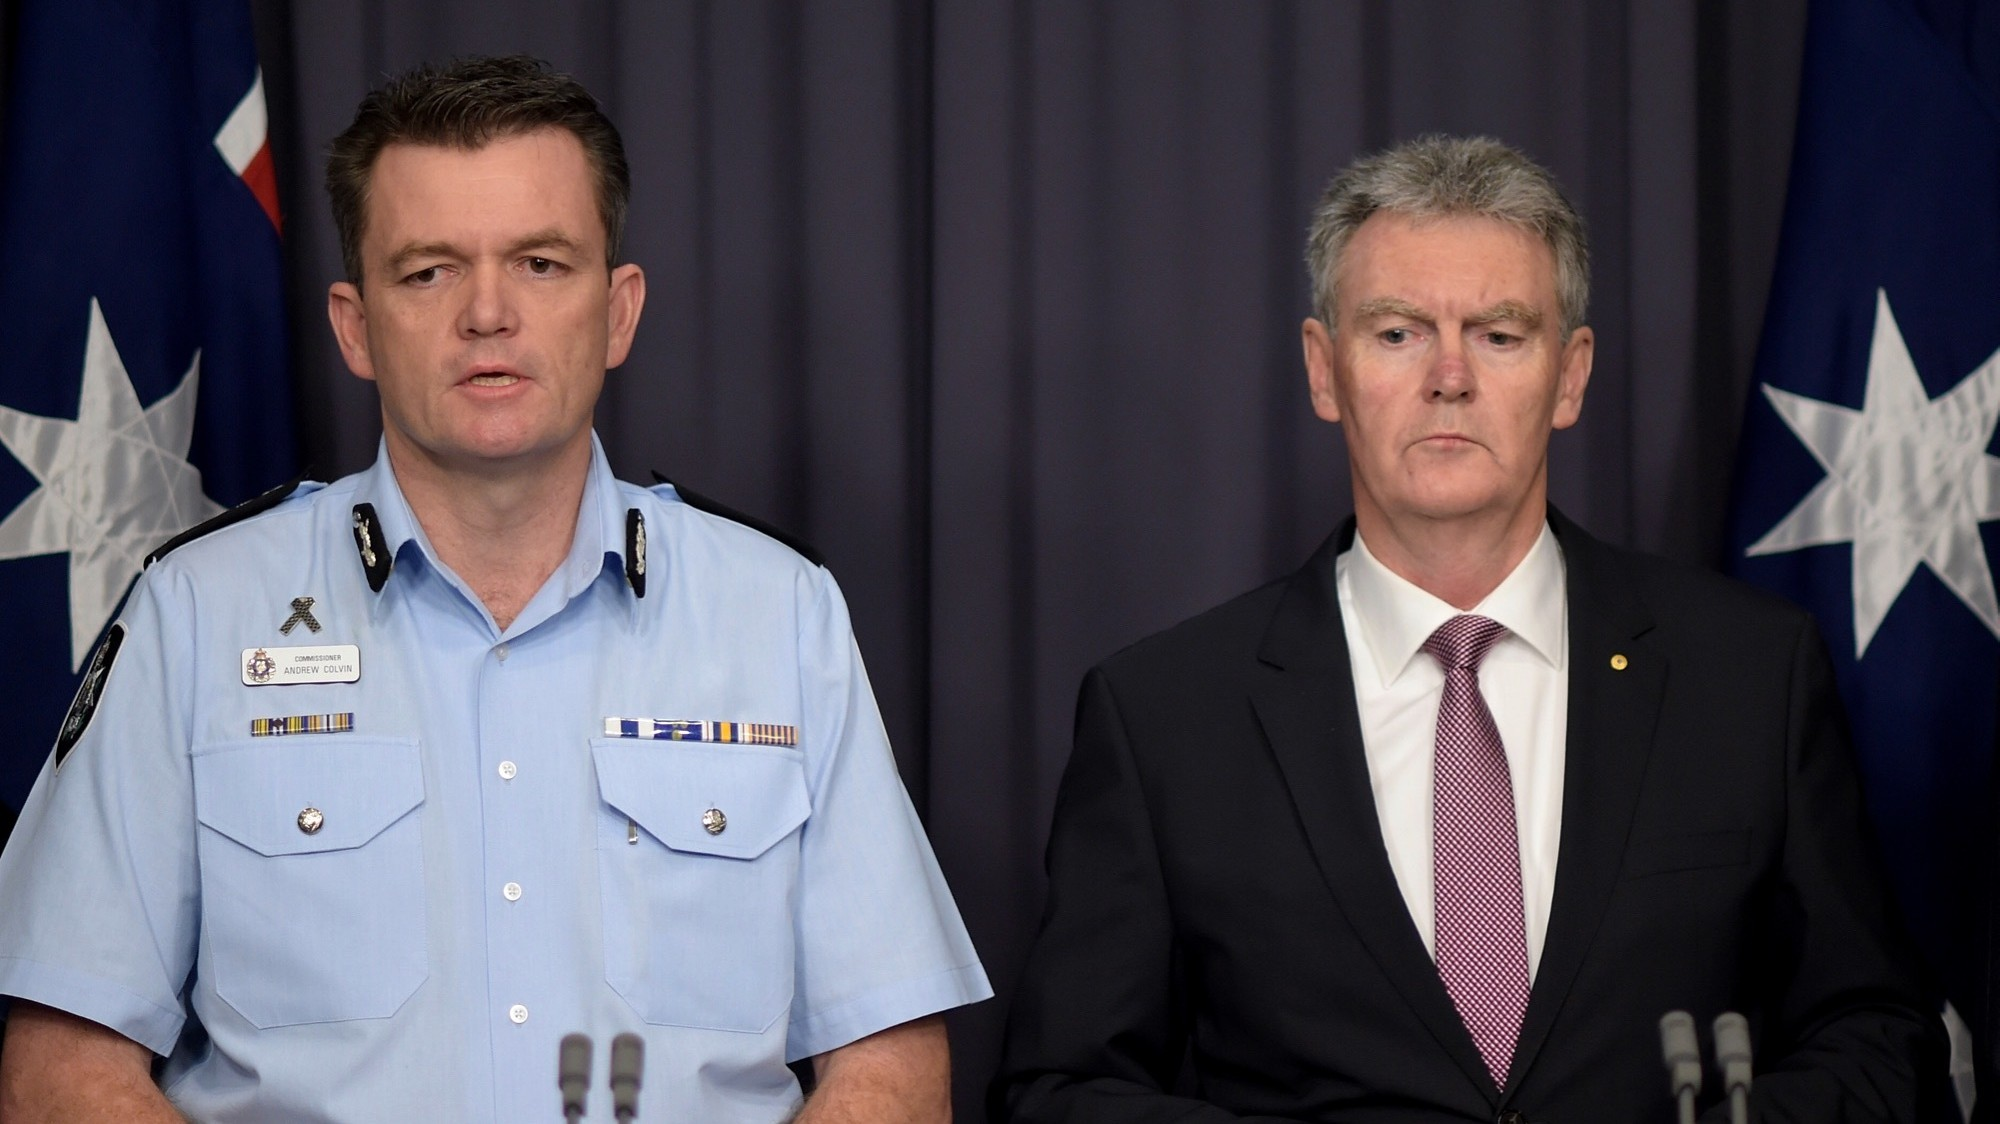 Australia Moves to Strip Suspected Terrorists of Citizenship — So Long As They're Dual Citizens